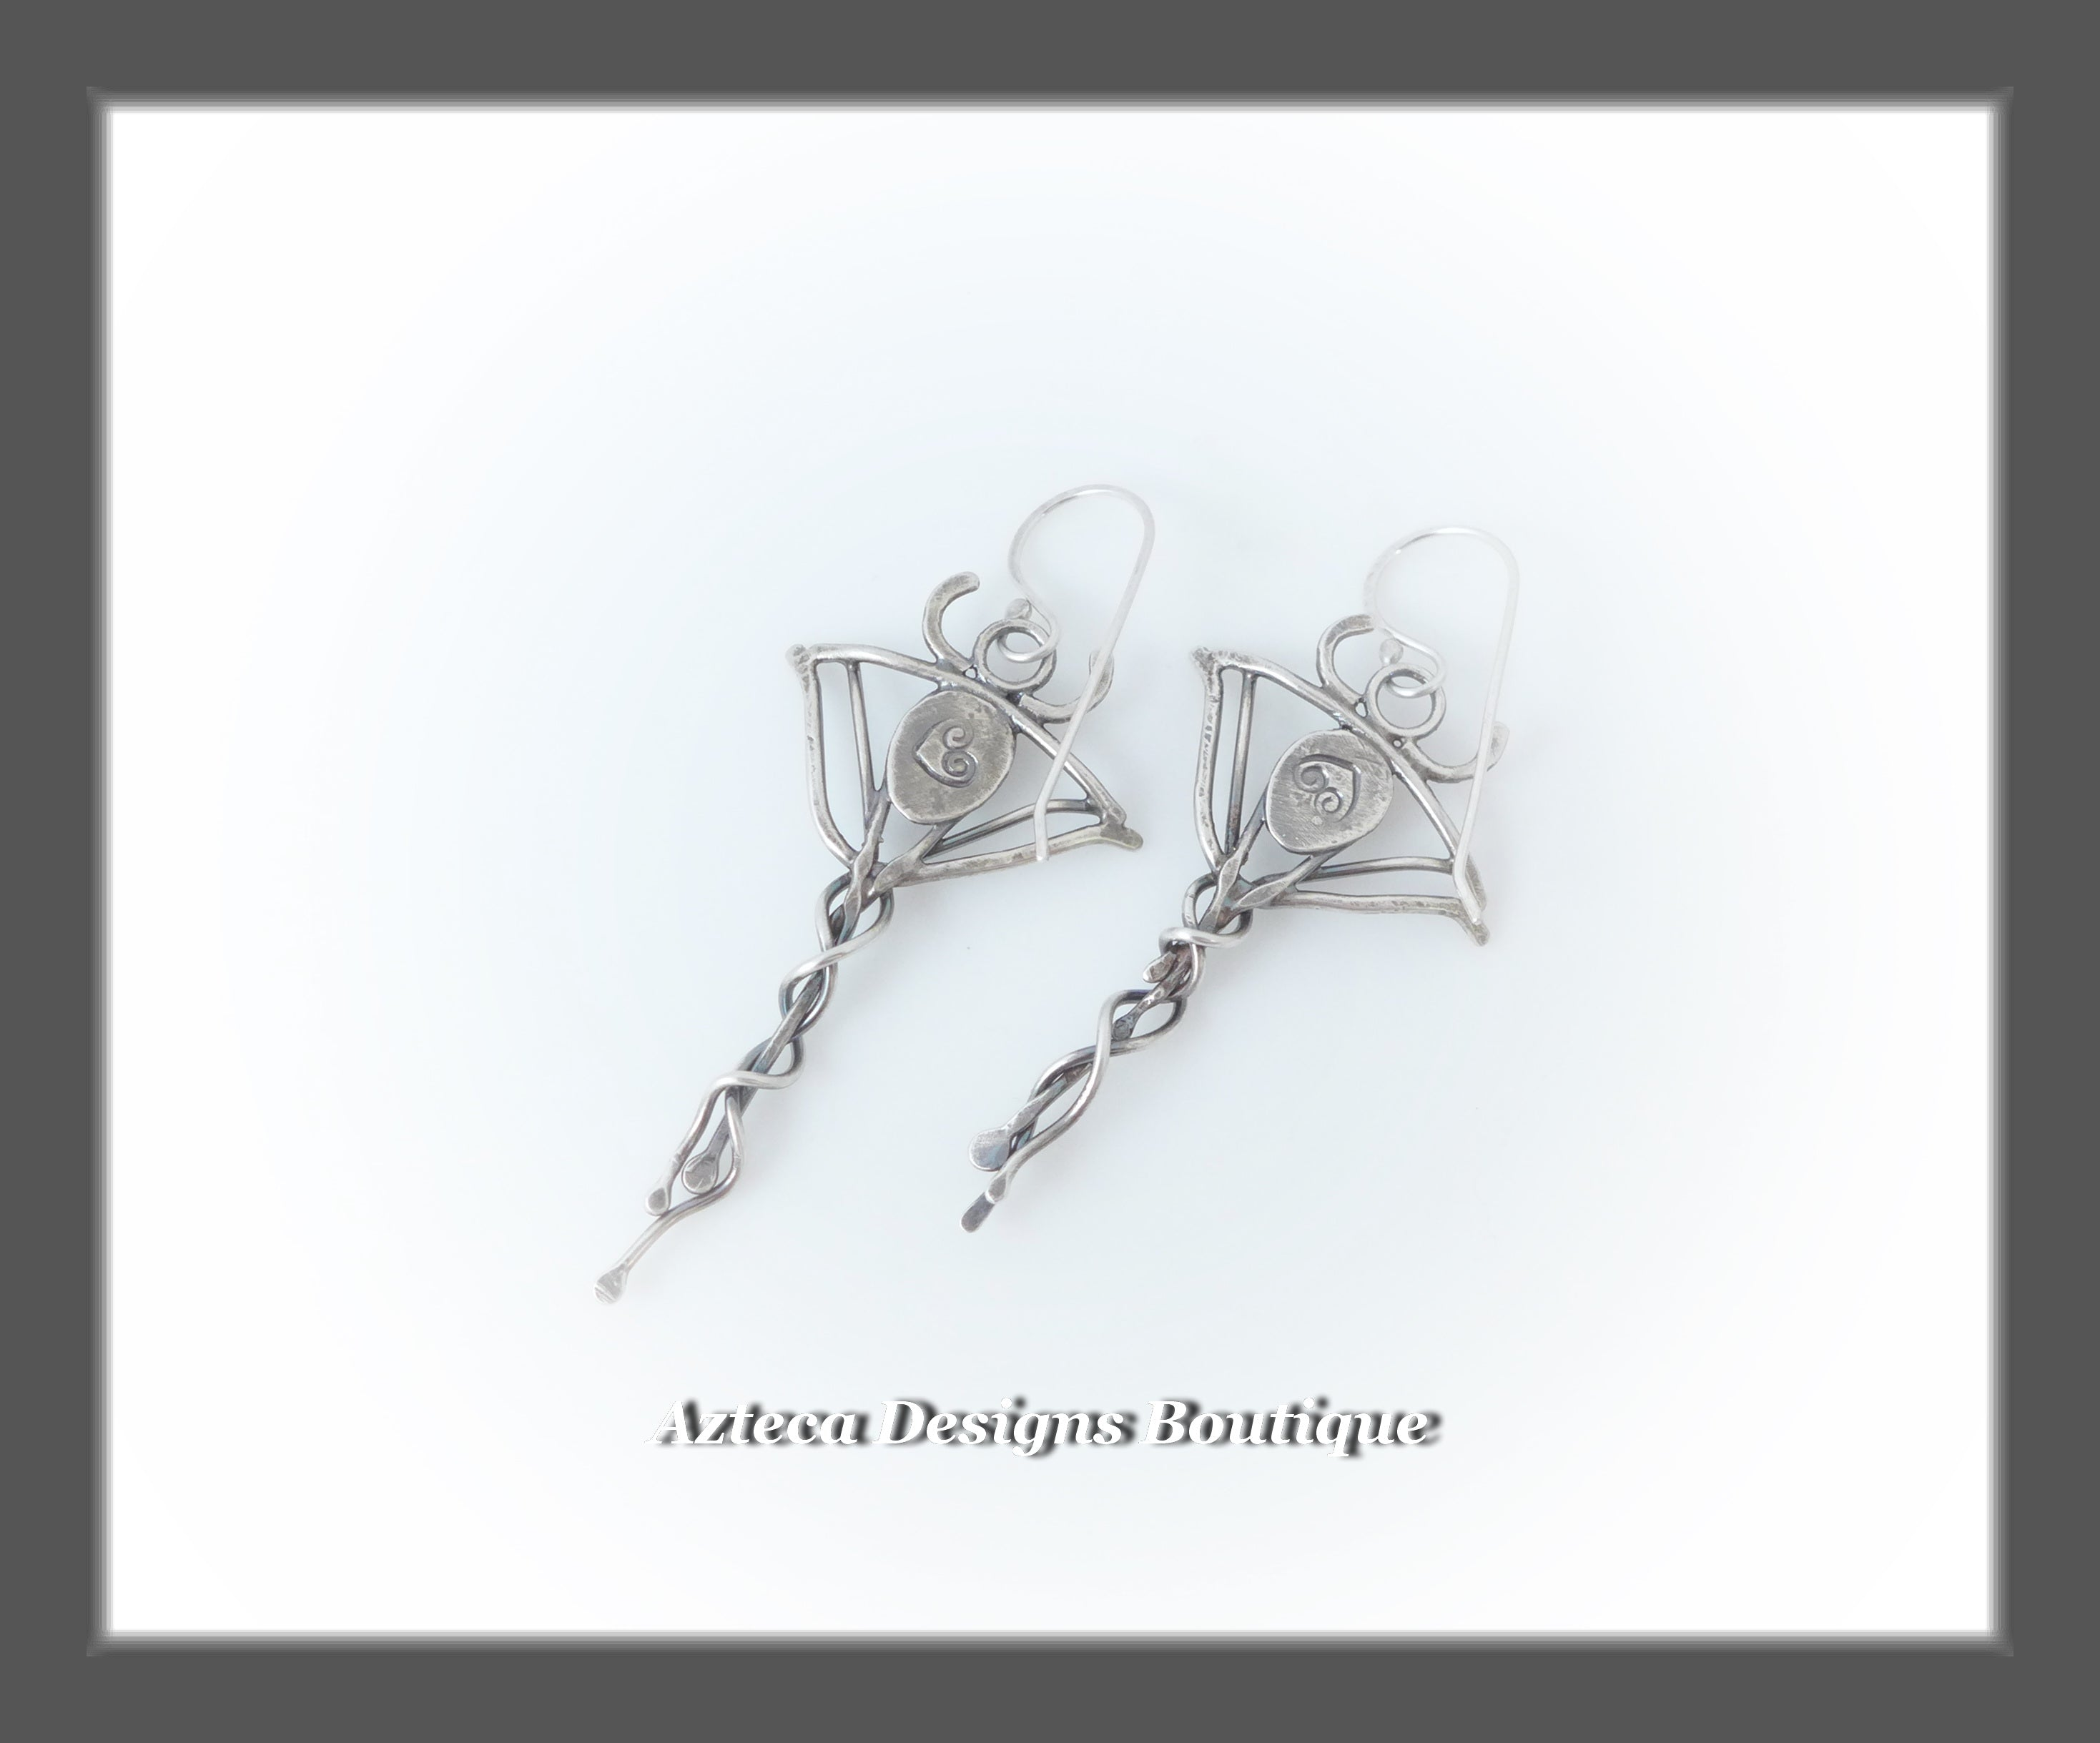 Swiss Blue Topaz+Argentium Silver+Manta Ray Earrings